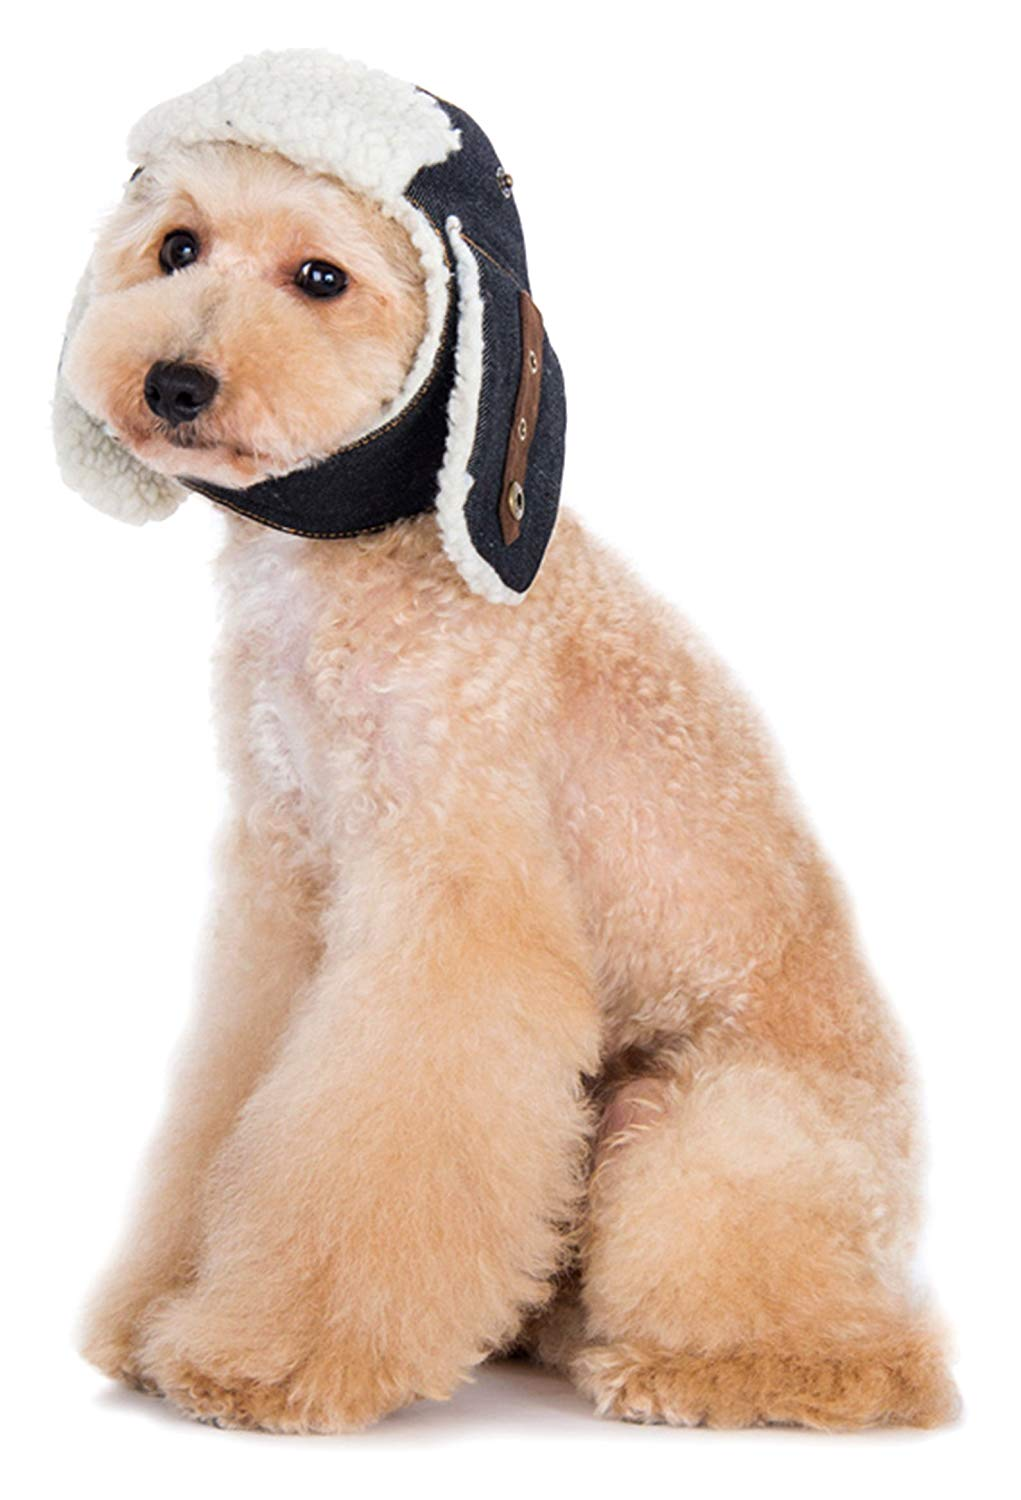 Winter hats for dogs and winter coats for dogs